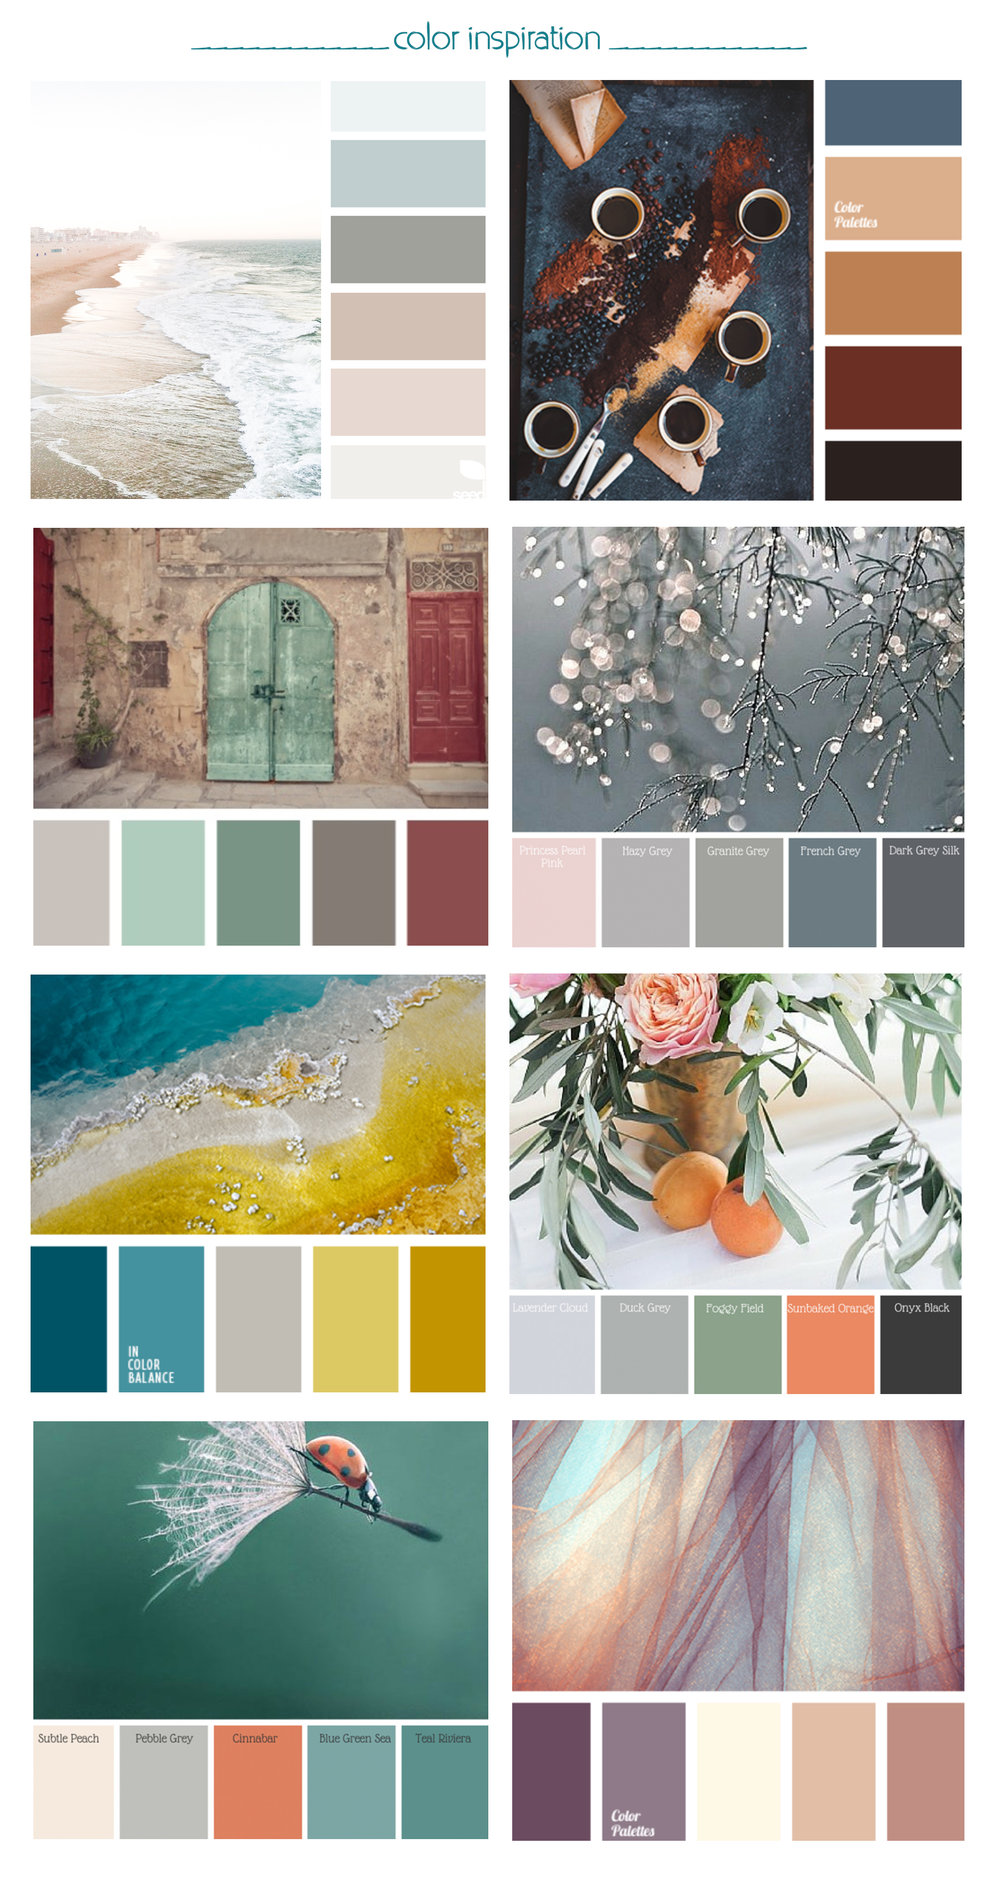 color inspiration.jpg